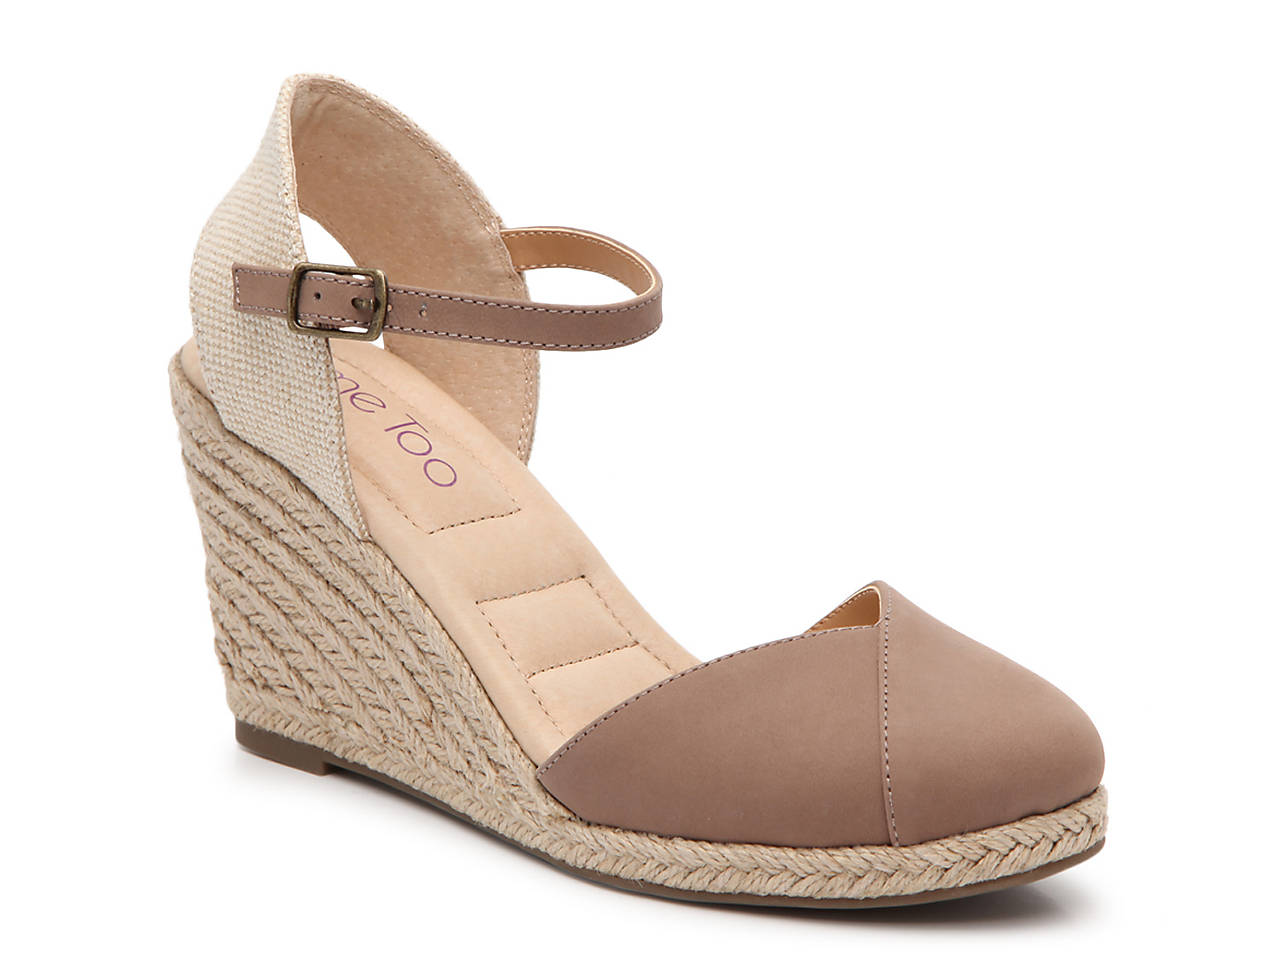 7a21c4f86b Me Too Betty Espadrille Wedge Sandal Women s Shoes